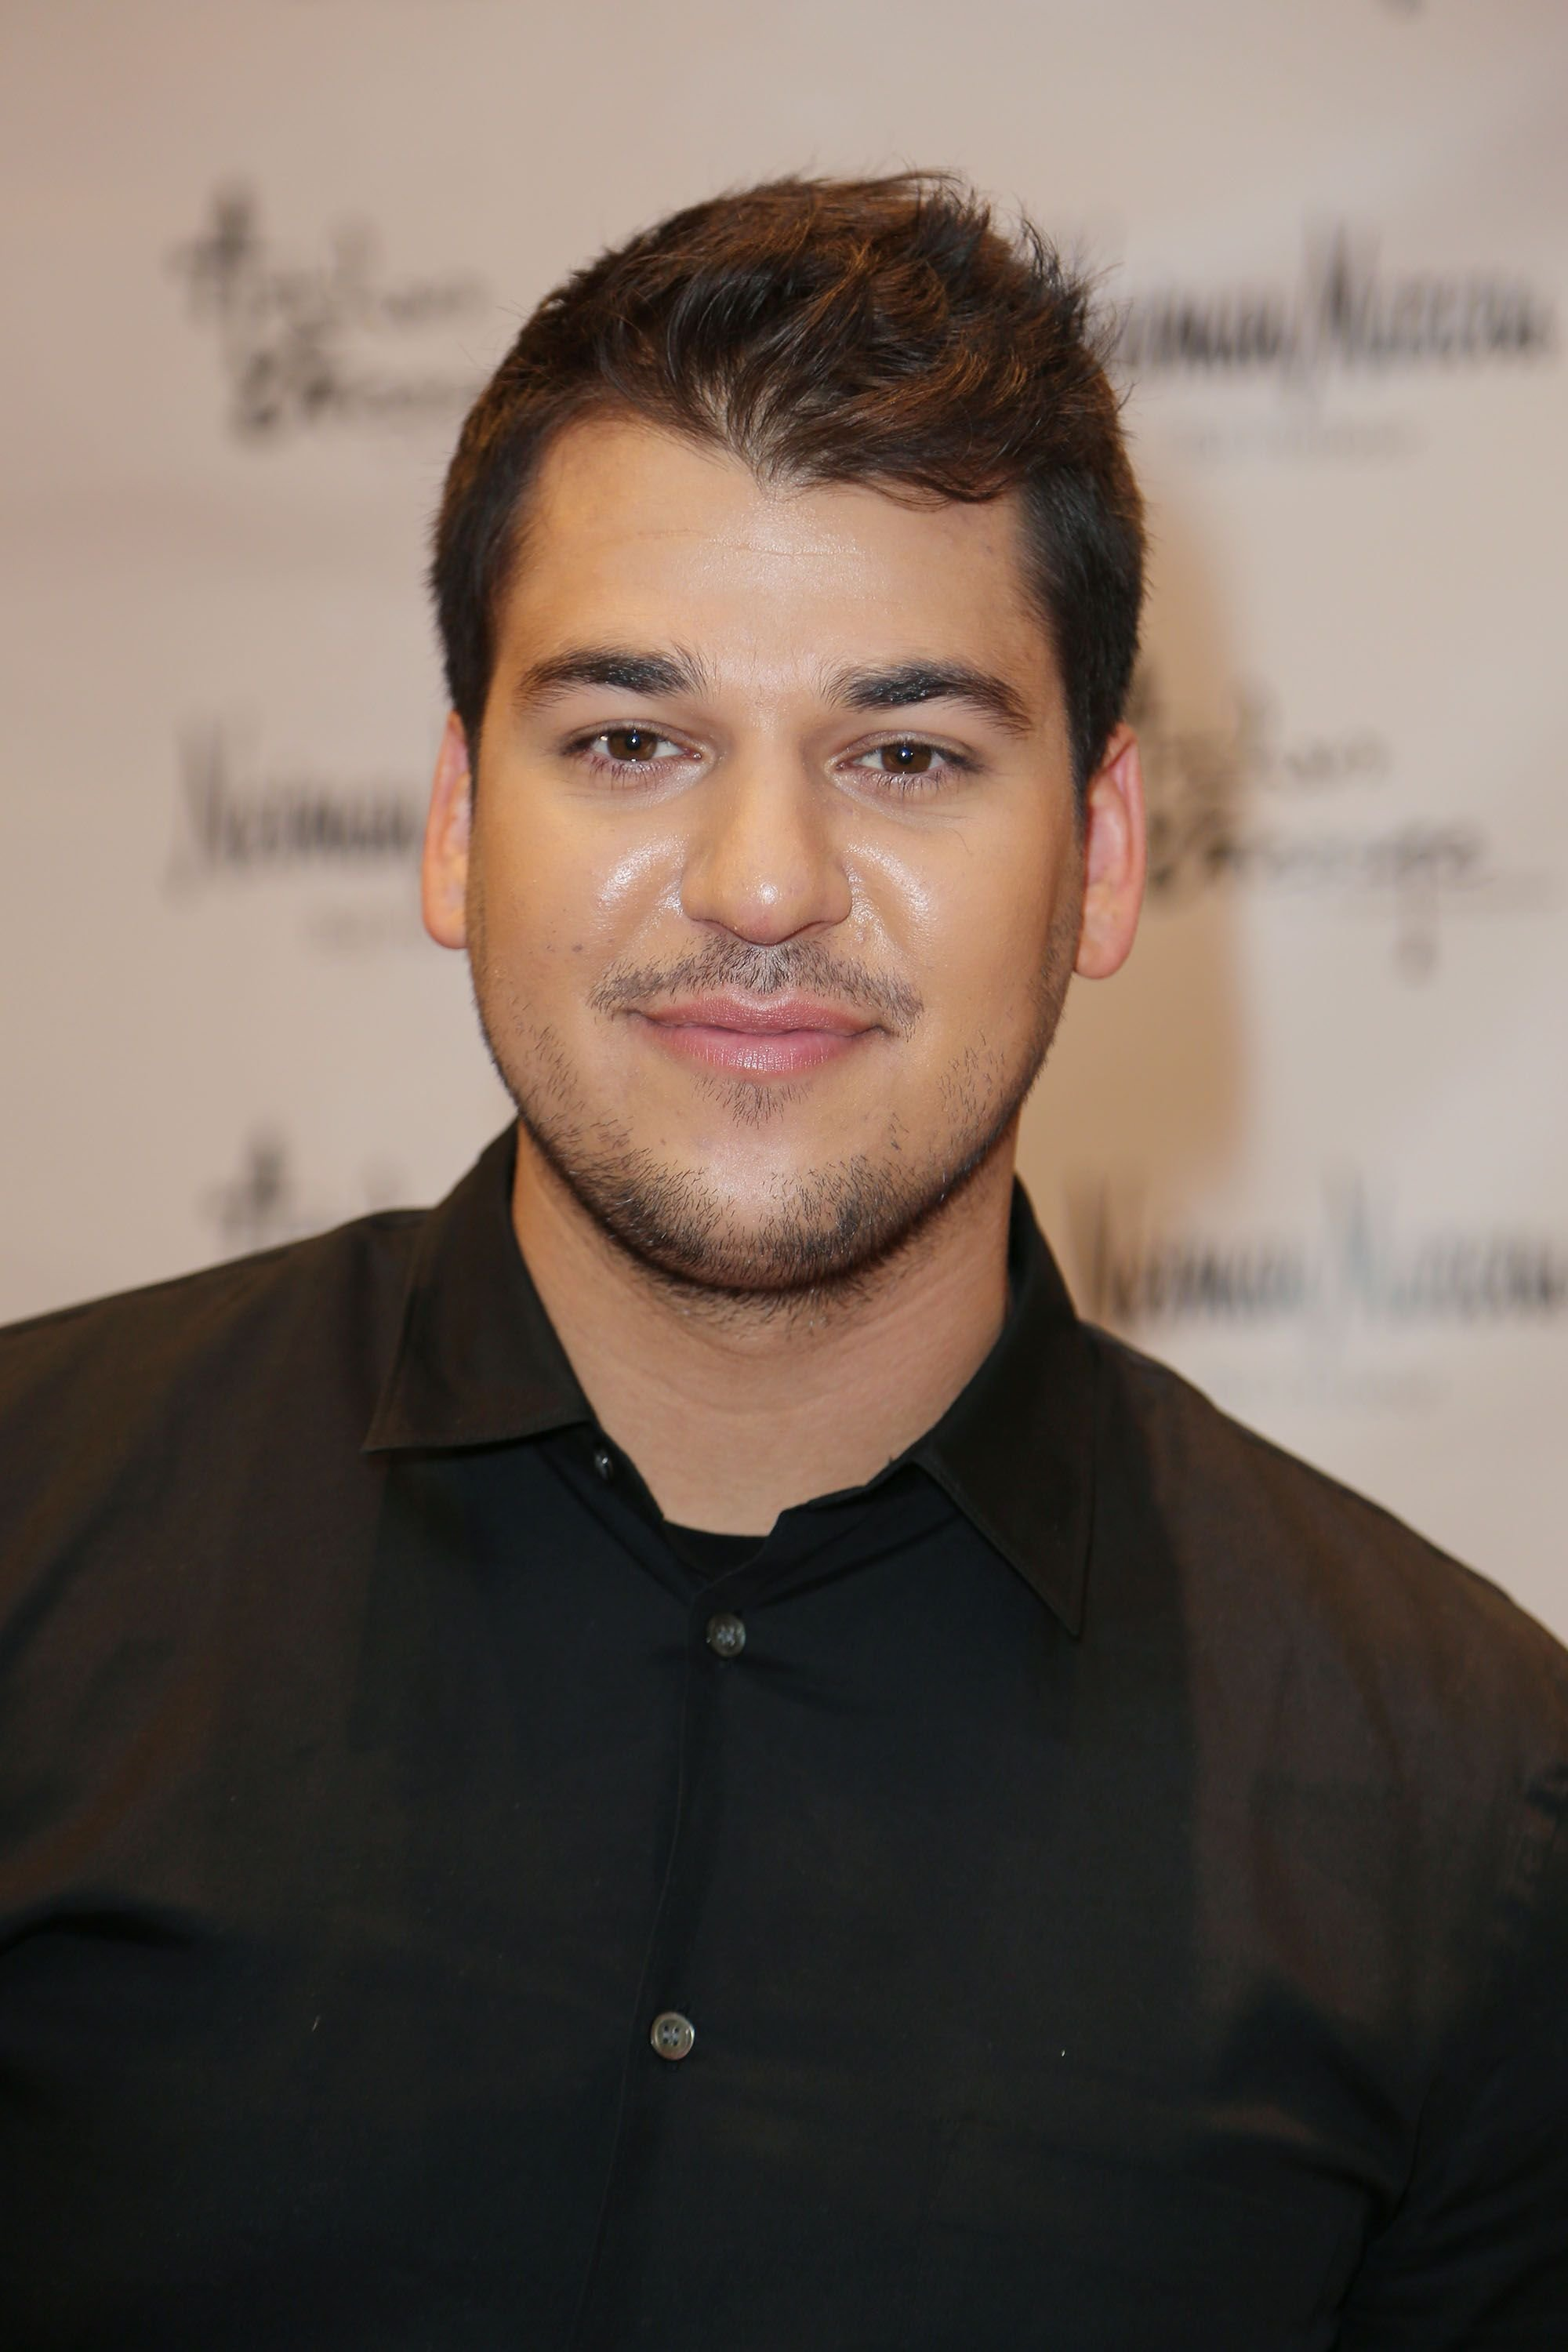 Rob Kardashian promoting his Arthur George Socks Collection at Neiman Marcus Bal Harbour at Neiman Marcus on December 10, 2012 in Miami Beach, Florida. | Source: Getty Images